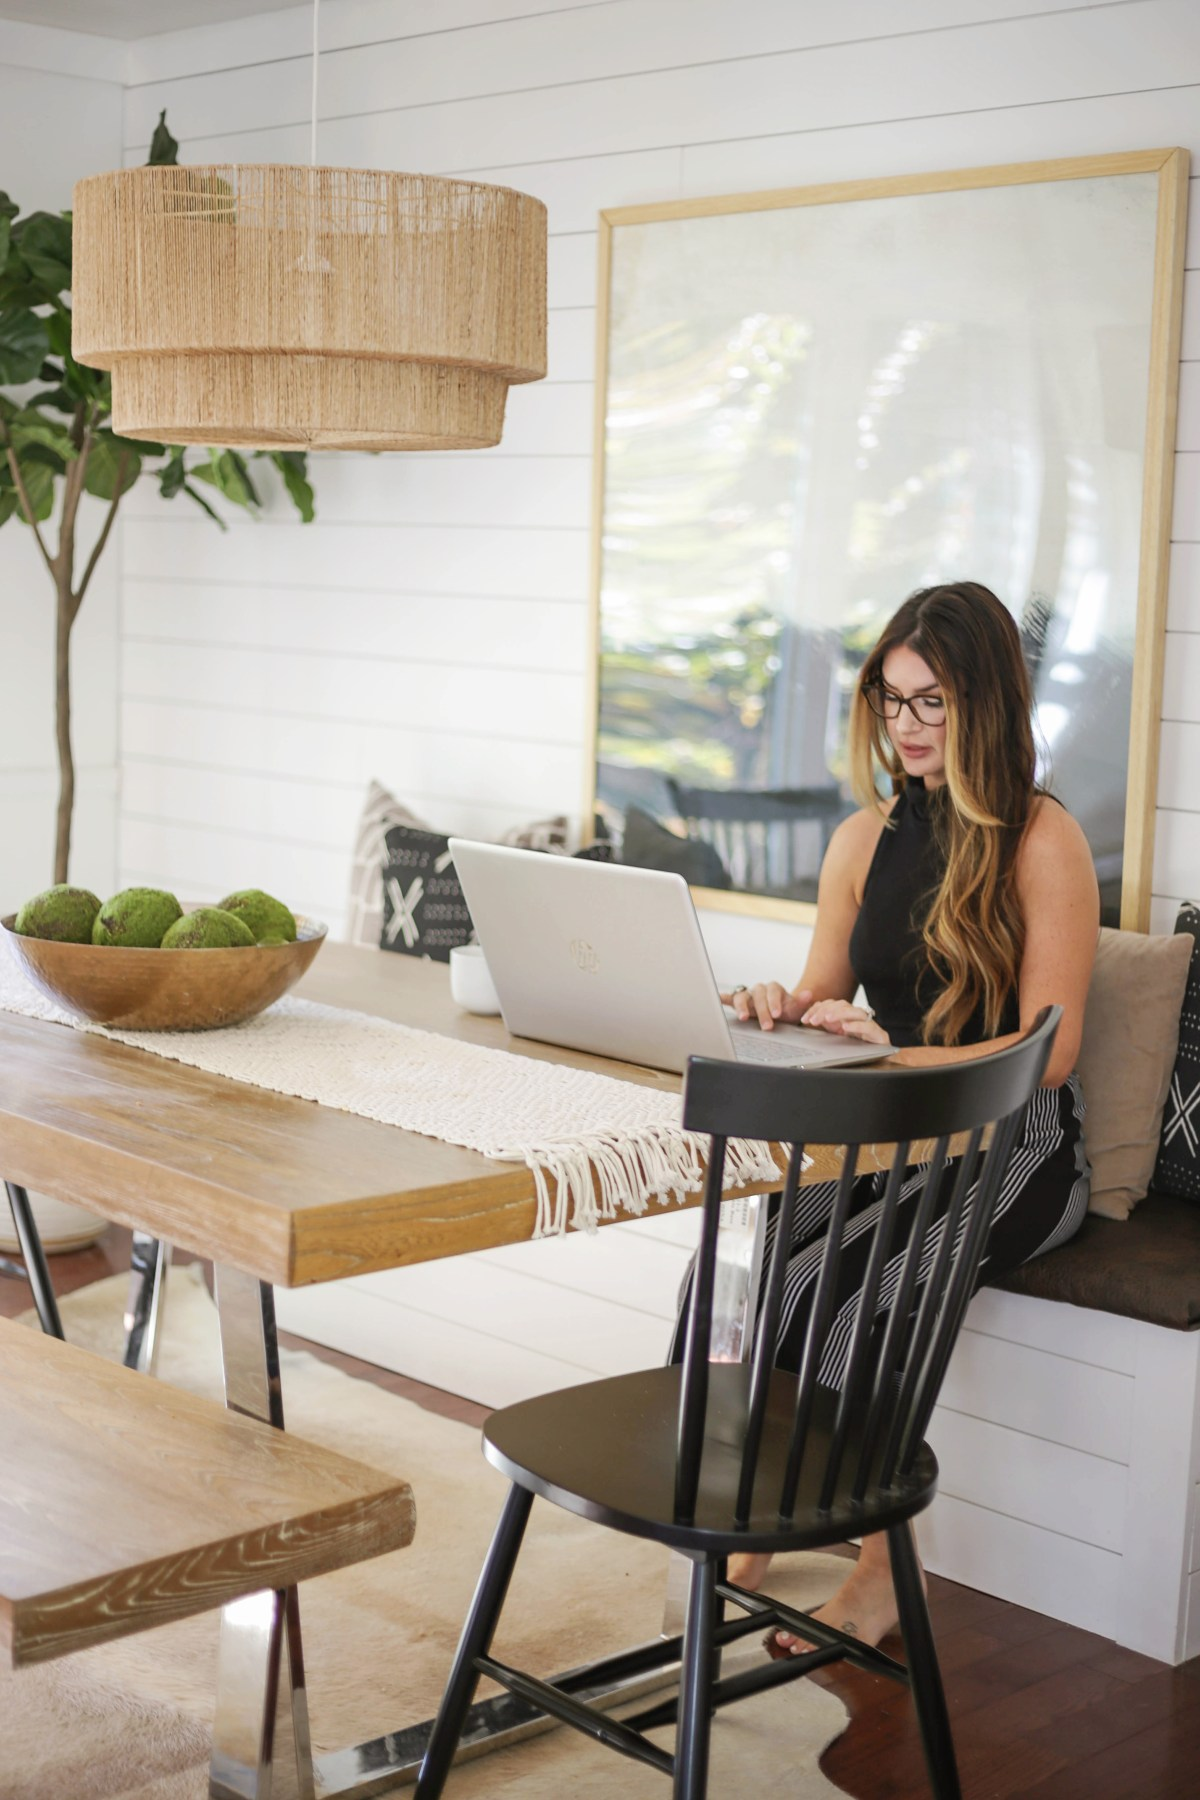 Reveal Dining Room Office Combo With Diy Built In Storage Banquette